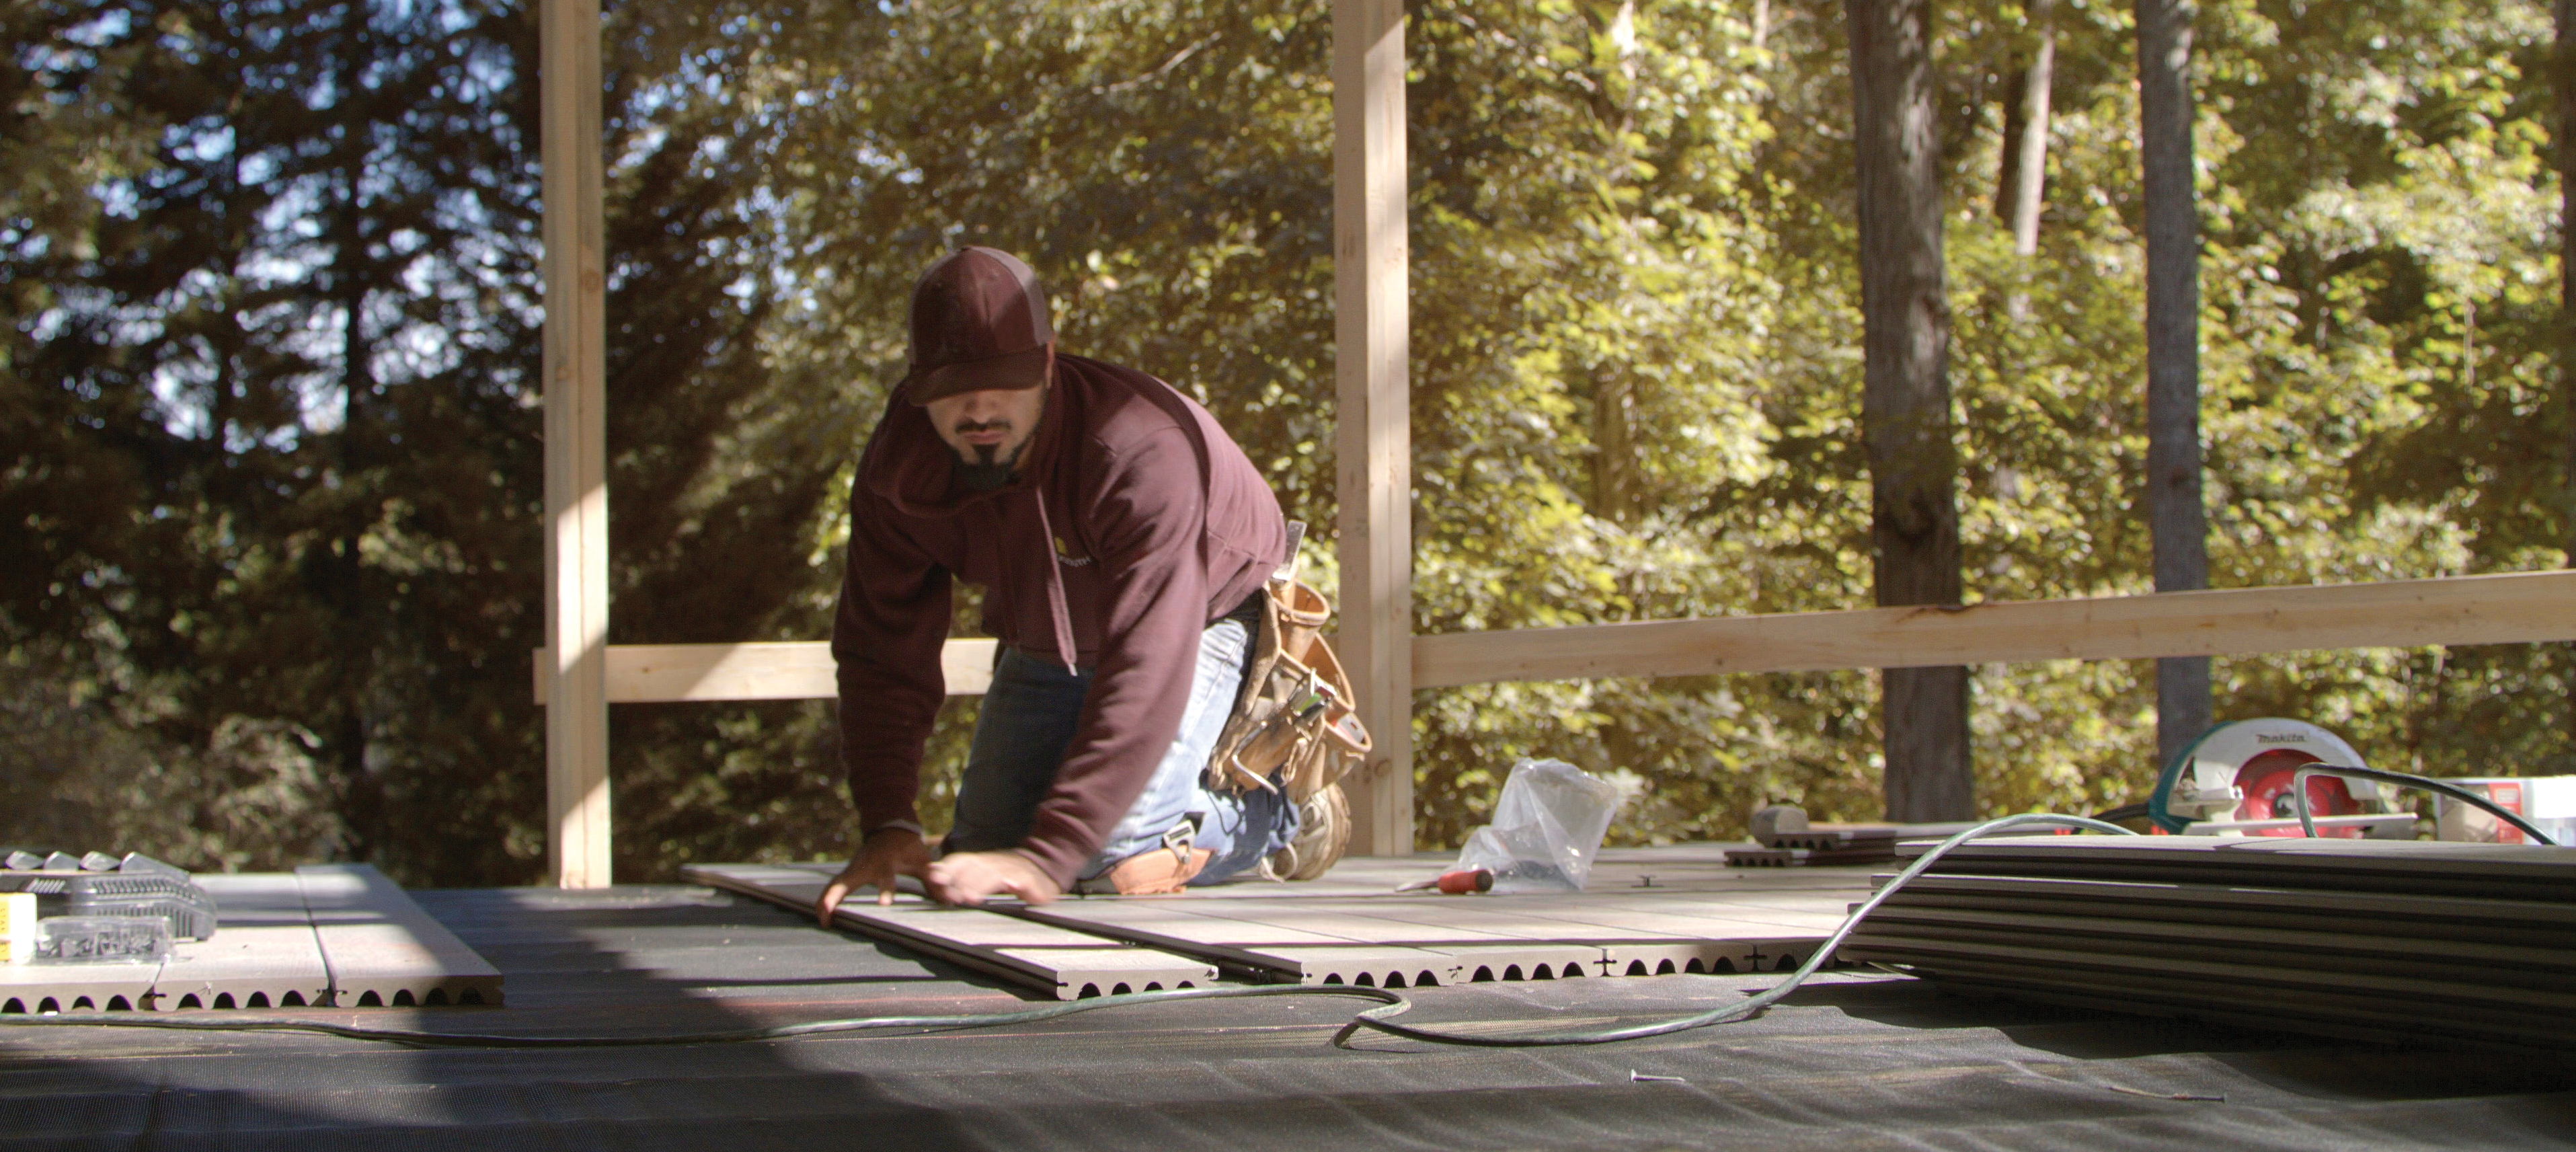 Contractor cutting composite decking boards on an existing deck.